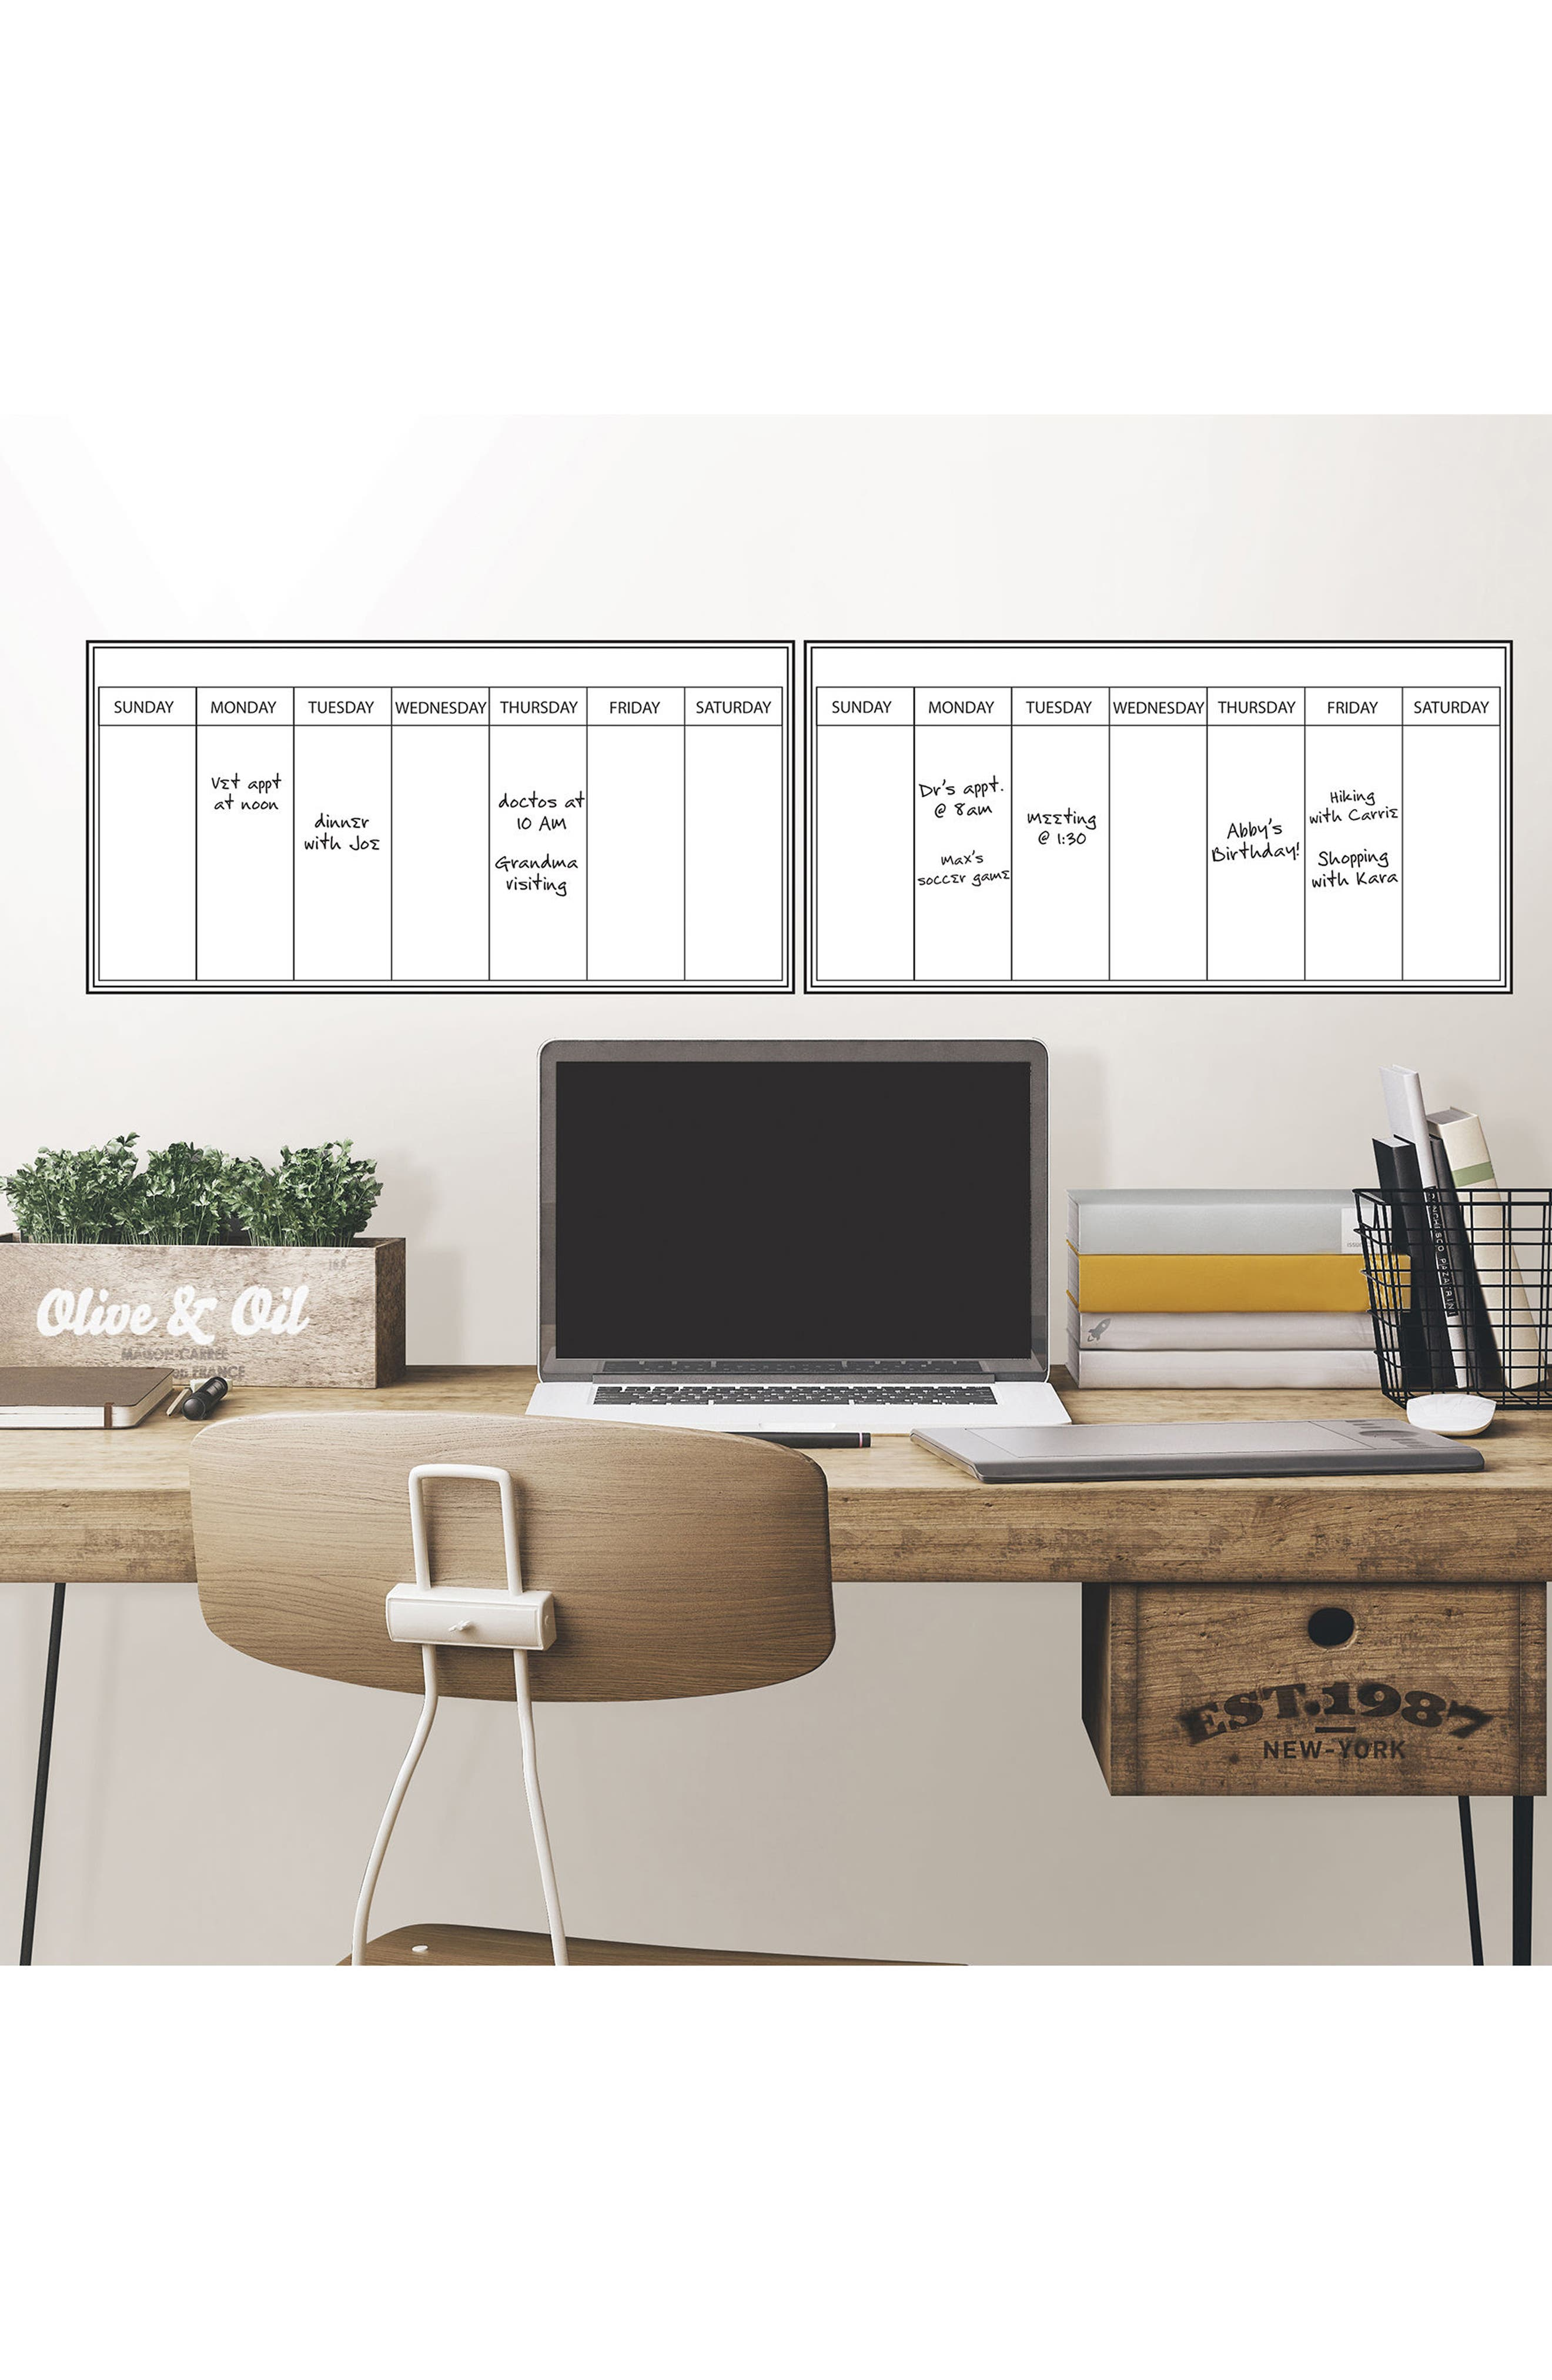 Weekly Dry Erase Calendar Decal,                             Alternate thumbnail 2, color,                             White Off-White